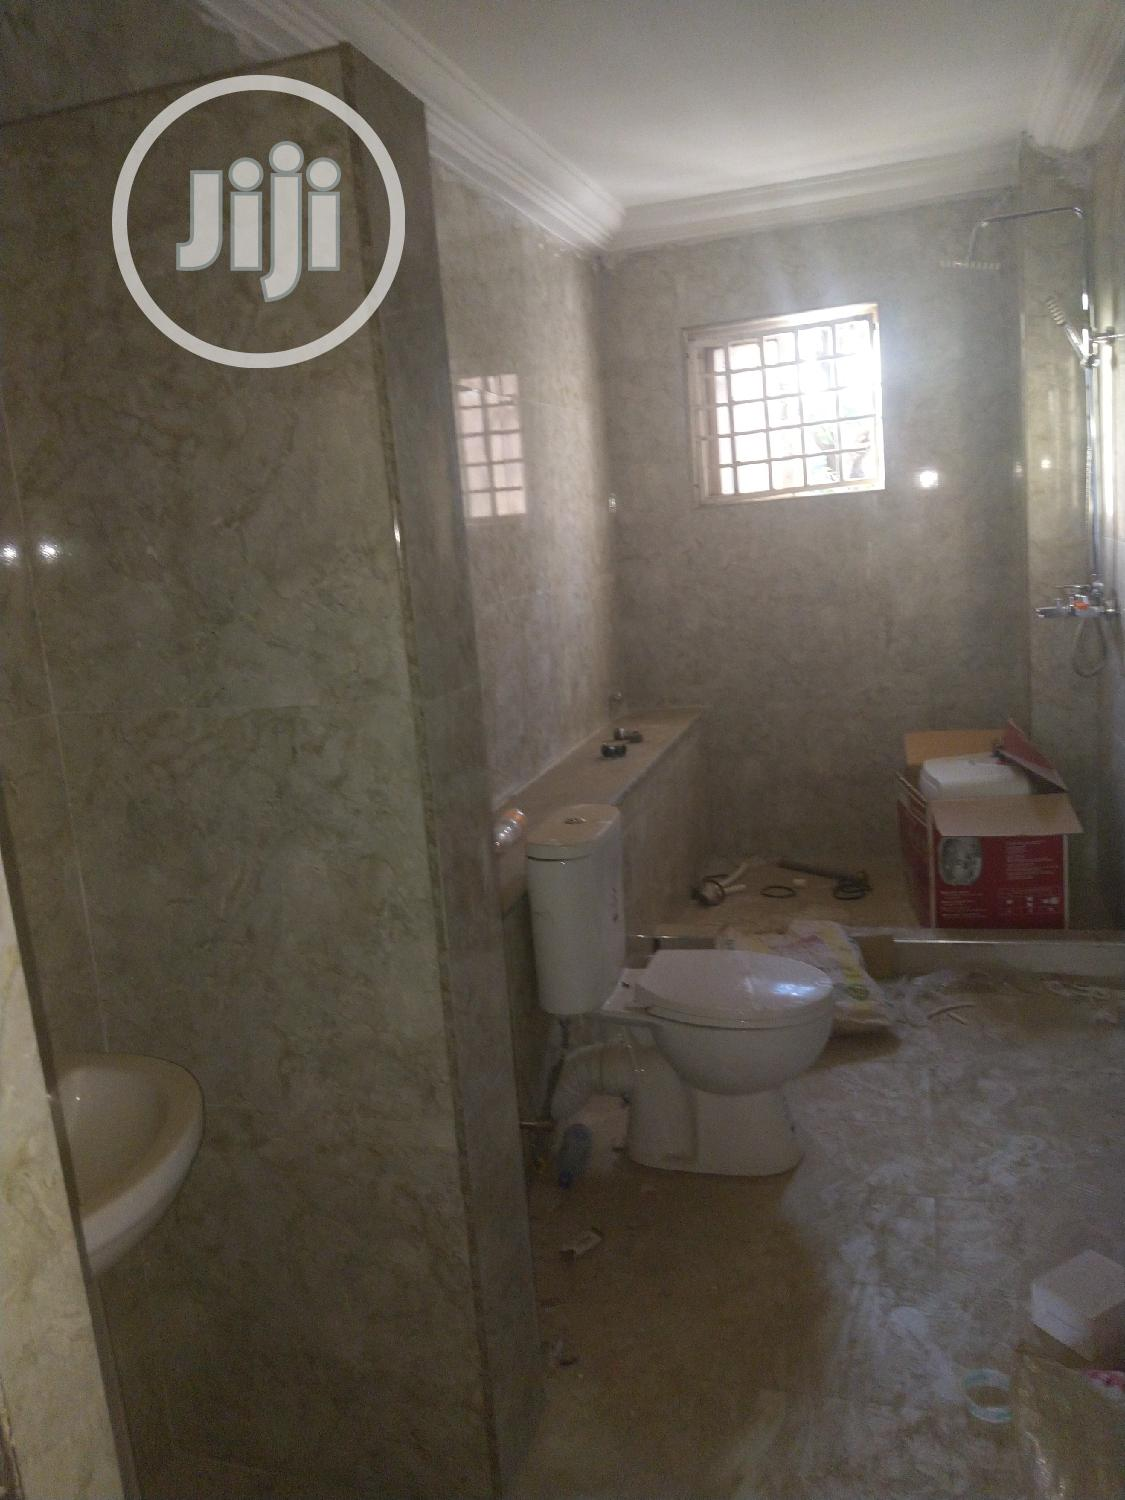 Service Brand New 2 Bedroom Apartment for Rent at Wuse 2 | Houses & Apartments For Rent for sale in Wuse 2, Abuja (FCT) State, Nigeria